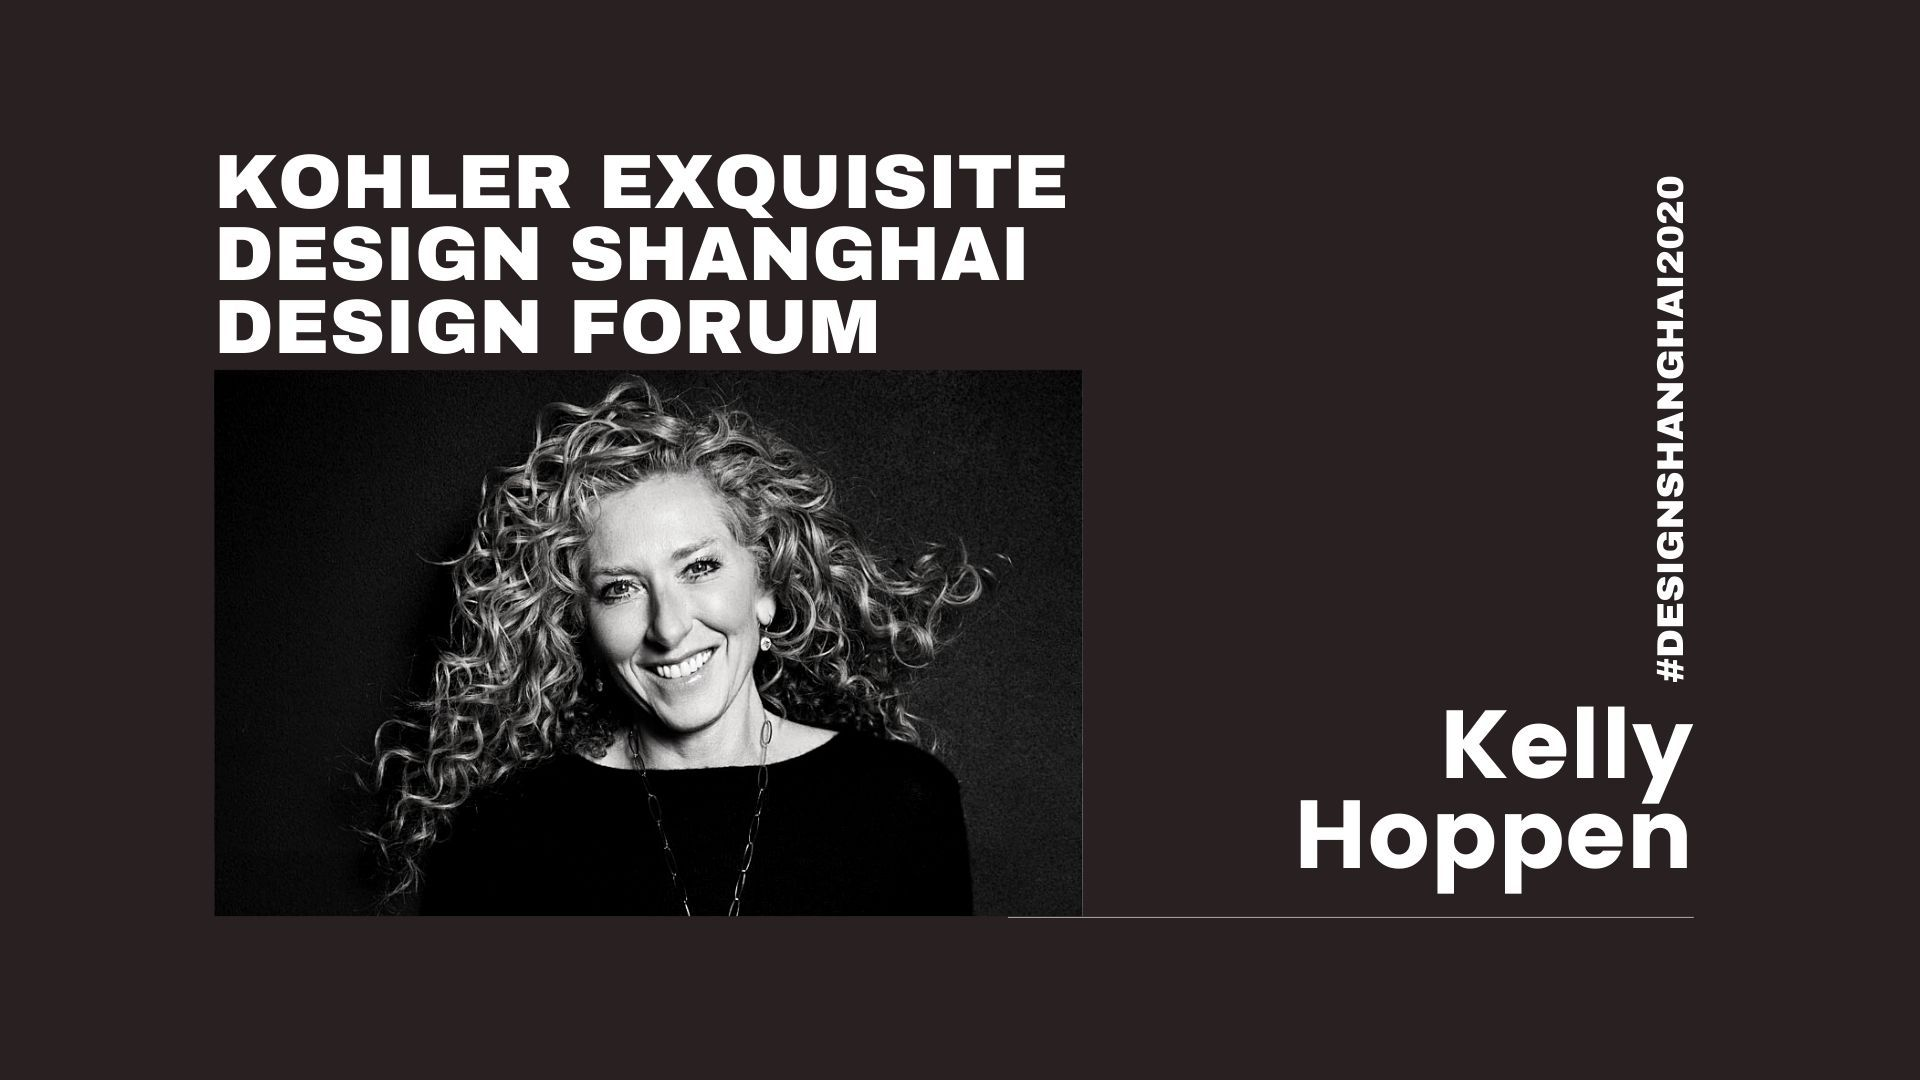 论坛视频回顾丨Kelly Hoppen: Designs For A Post-Covid World